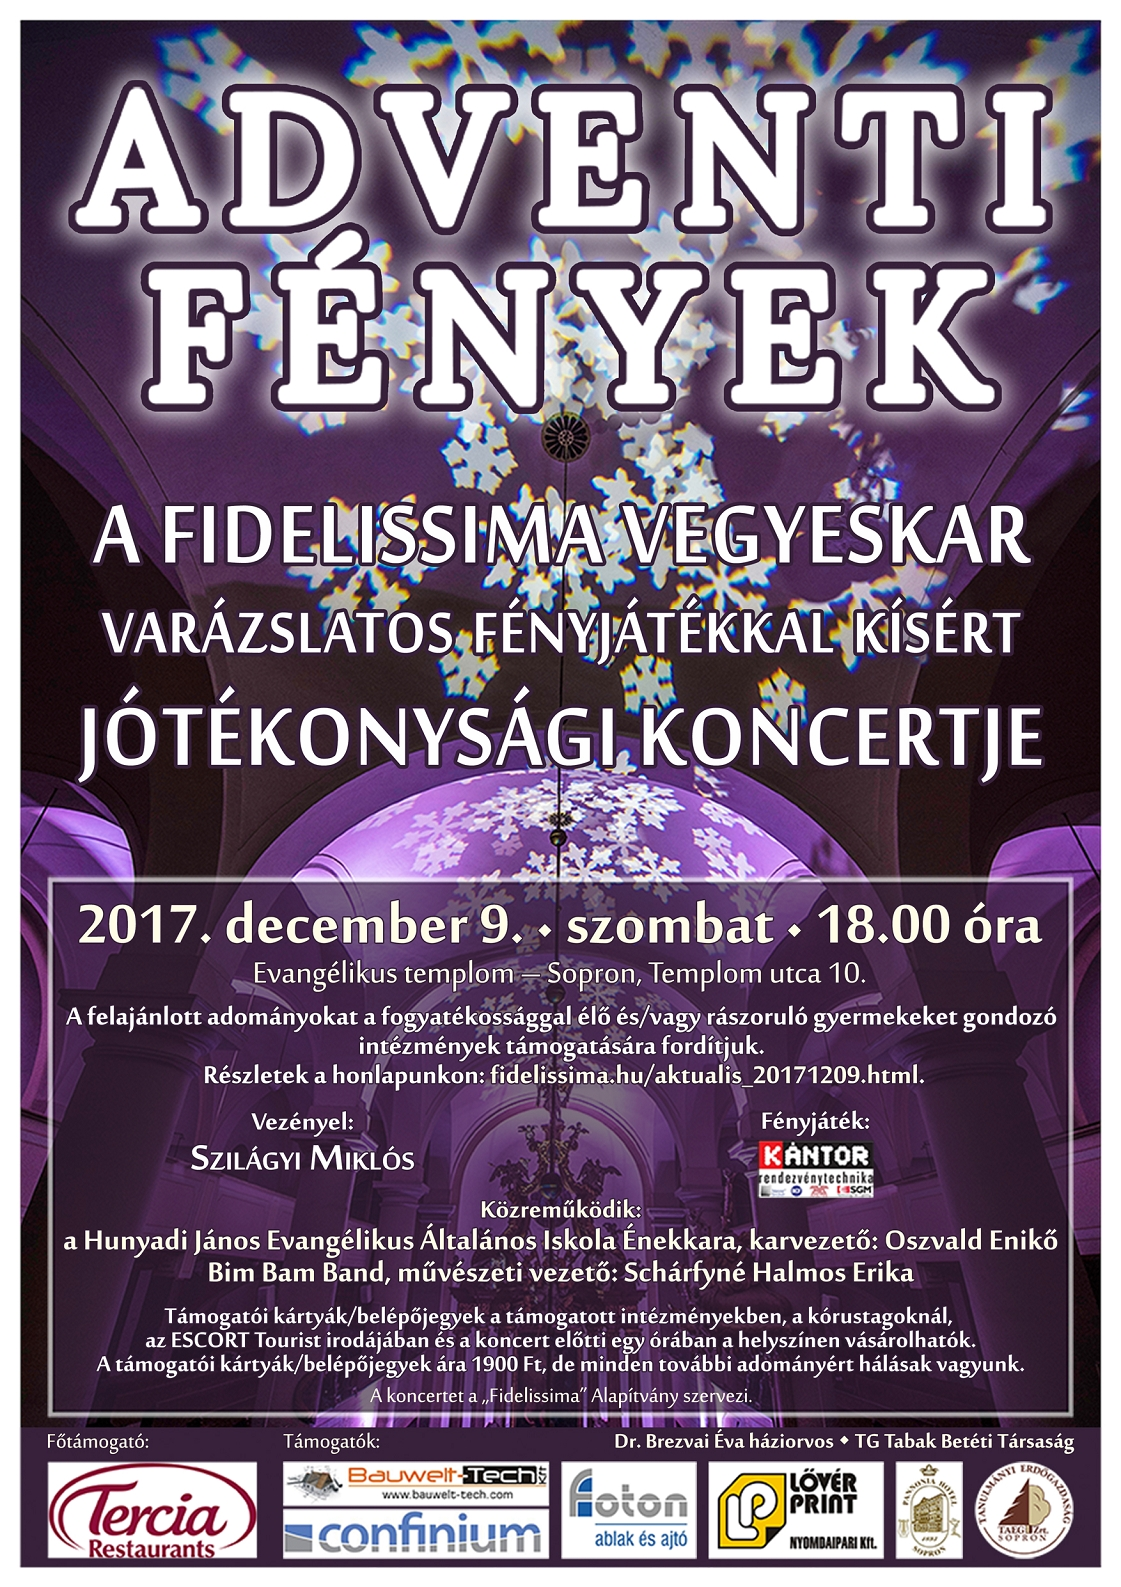 20171209_Adventi_fenyek_pl